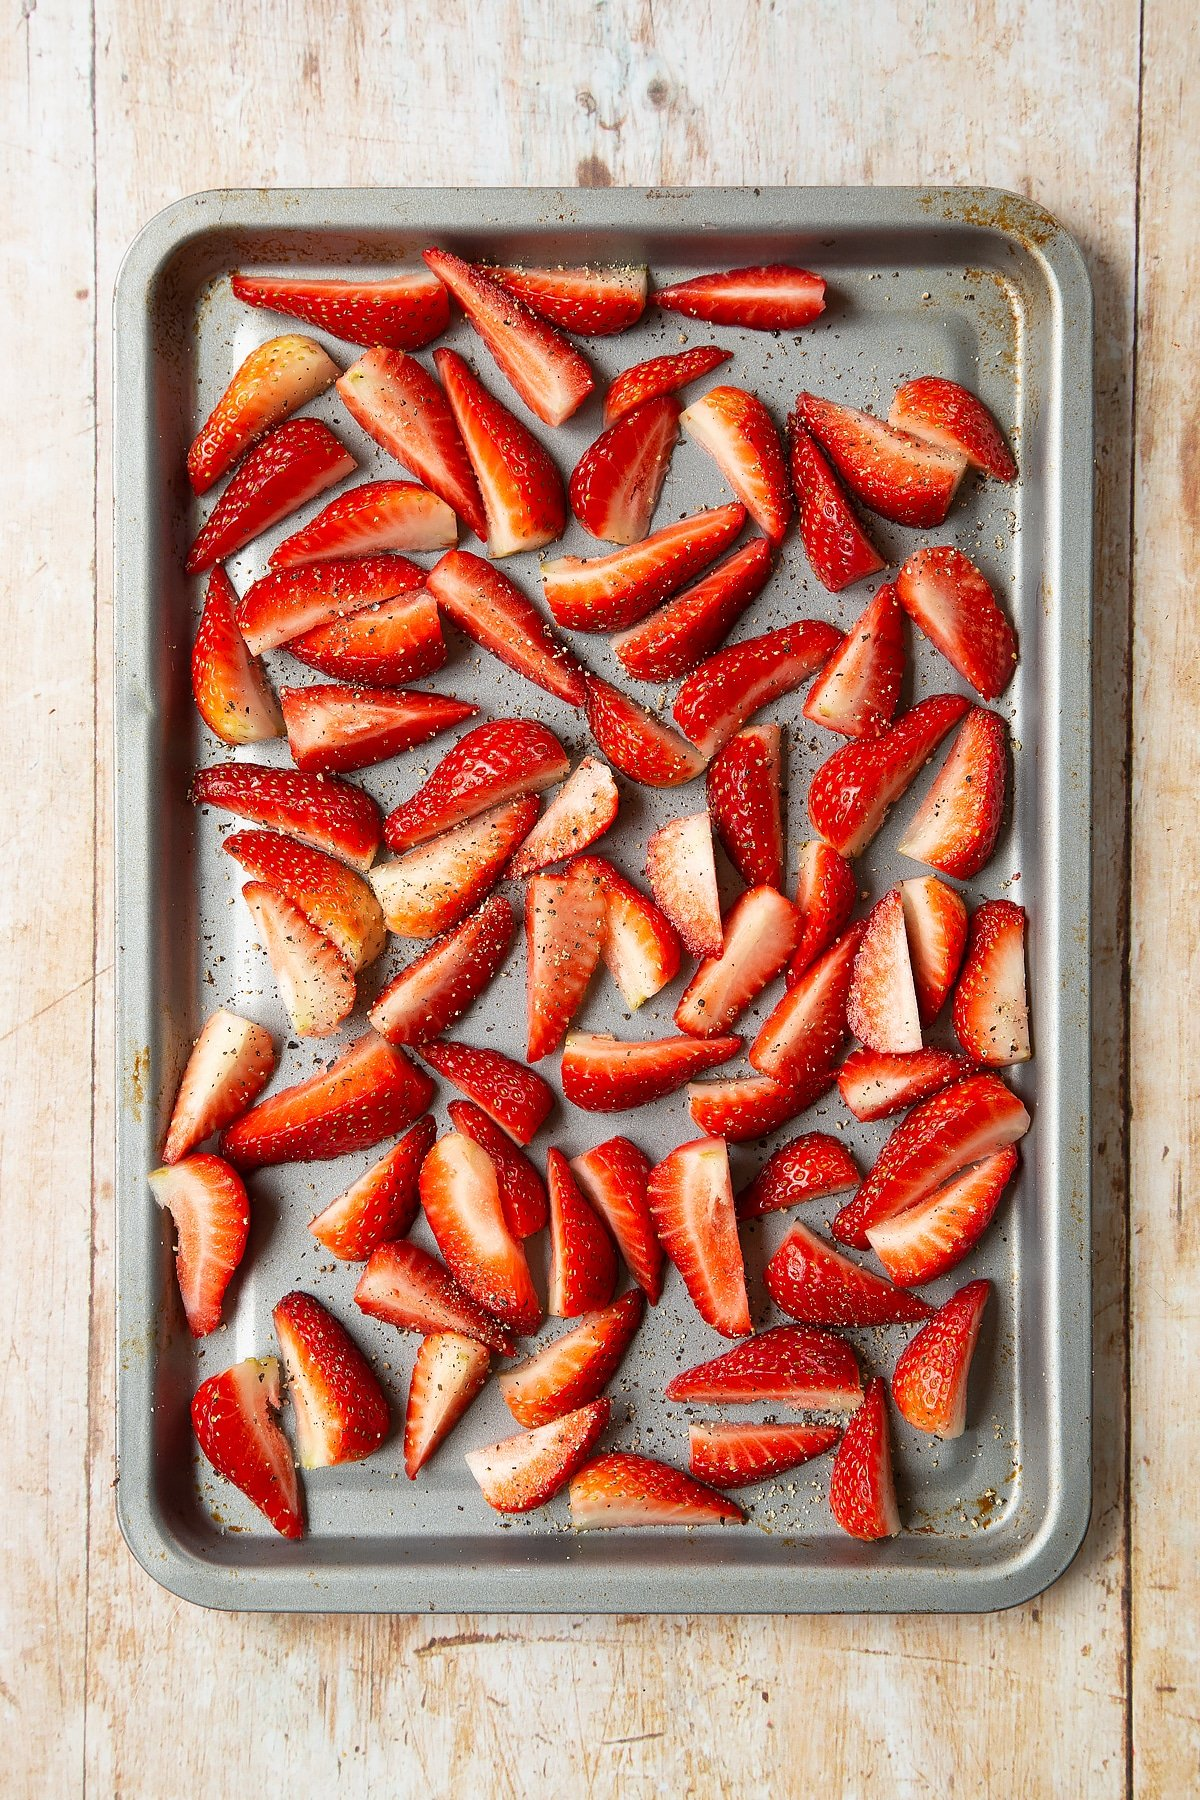 Strawberries sliced into quarters, seasoned with pepper on a non-stick tray.